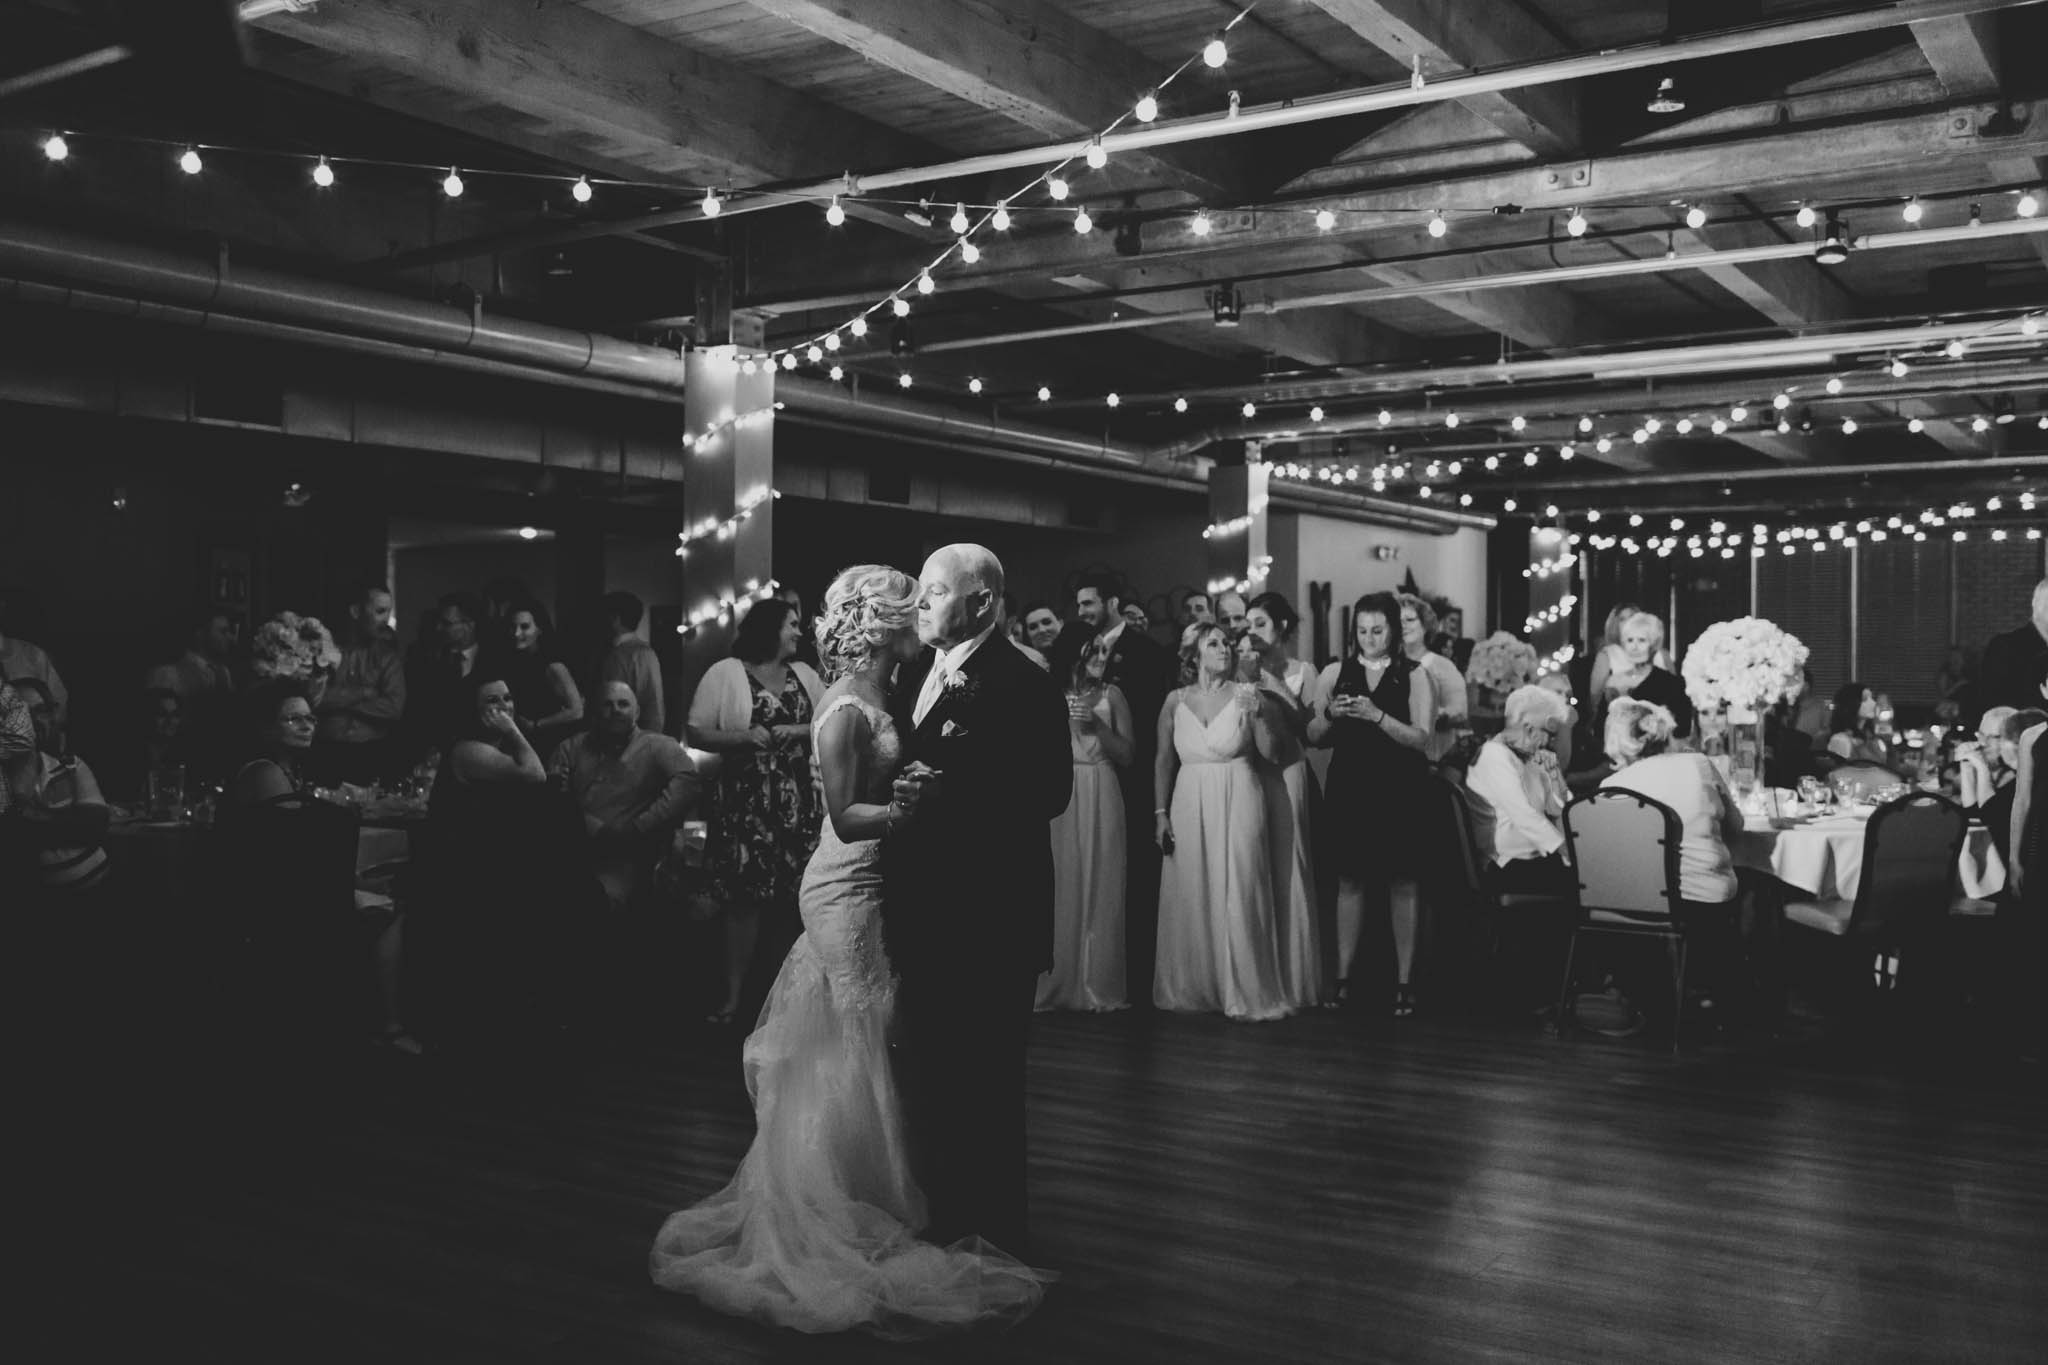 Jillian VanZytveld Photography - Grand Rapids Lifestyle Wedding Photography - 199.jpg